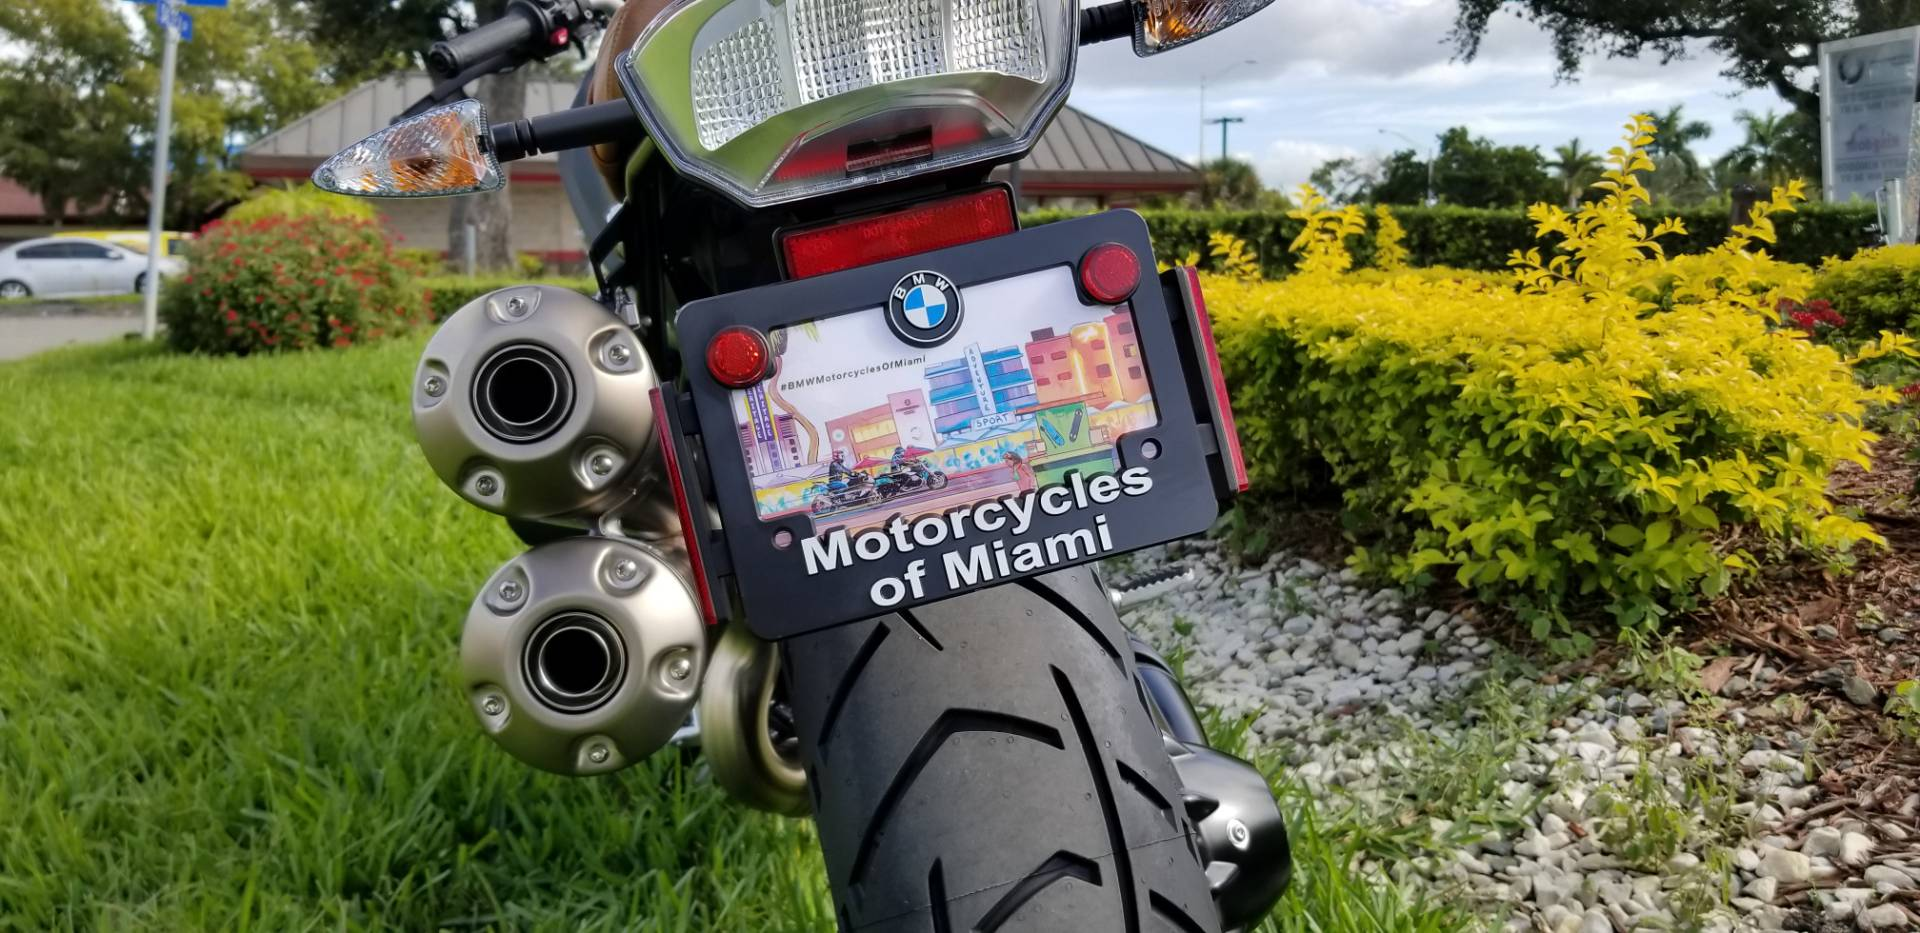 New 2019 BMW R NineT Scrambler for sale, BMW for sale, BMW Motorcycle Café Racer, new BMW Scrambler, Srambler, BMW. BMW Motorcycles of Miami, Motorcycles of Miami - Photo 15